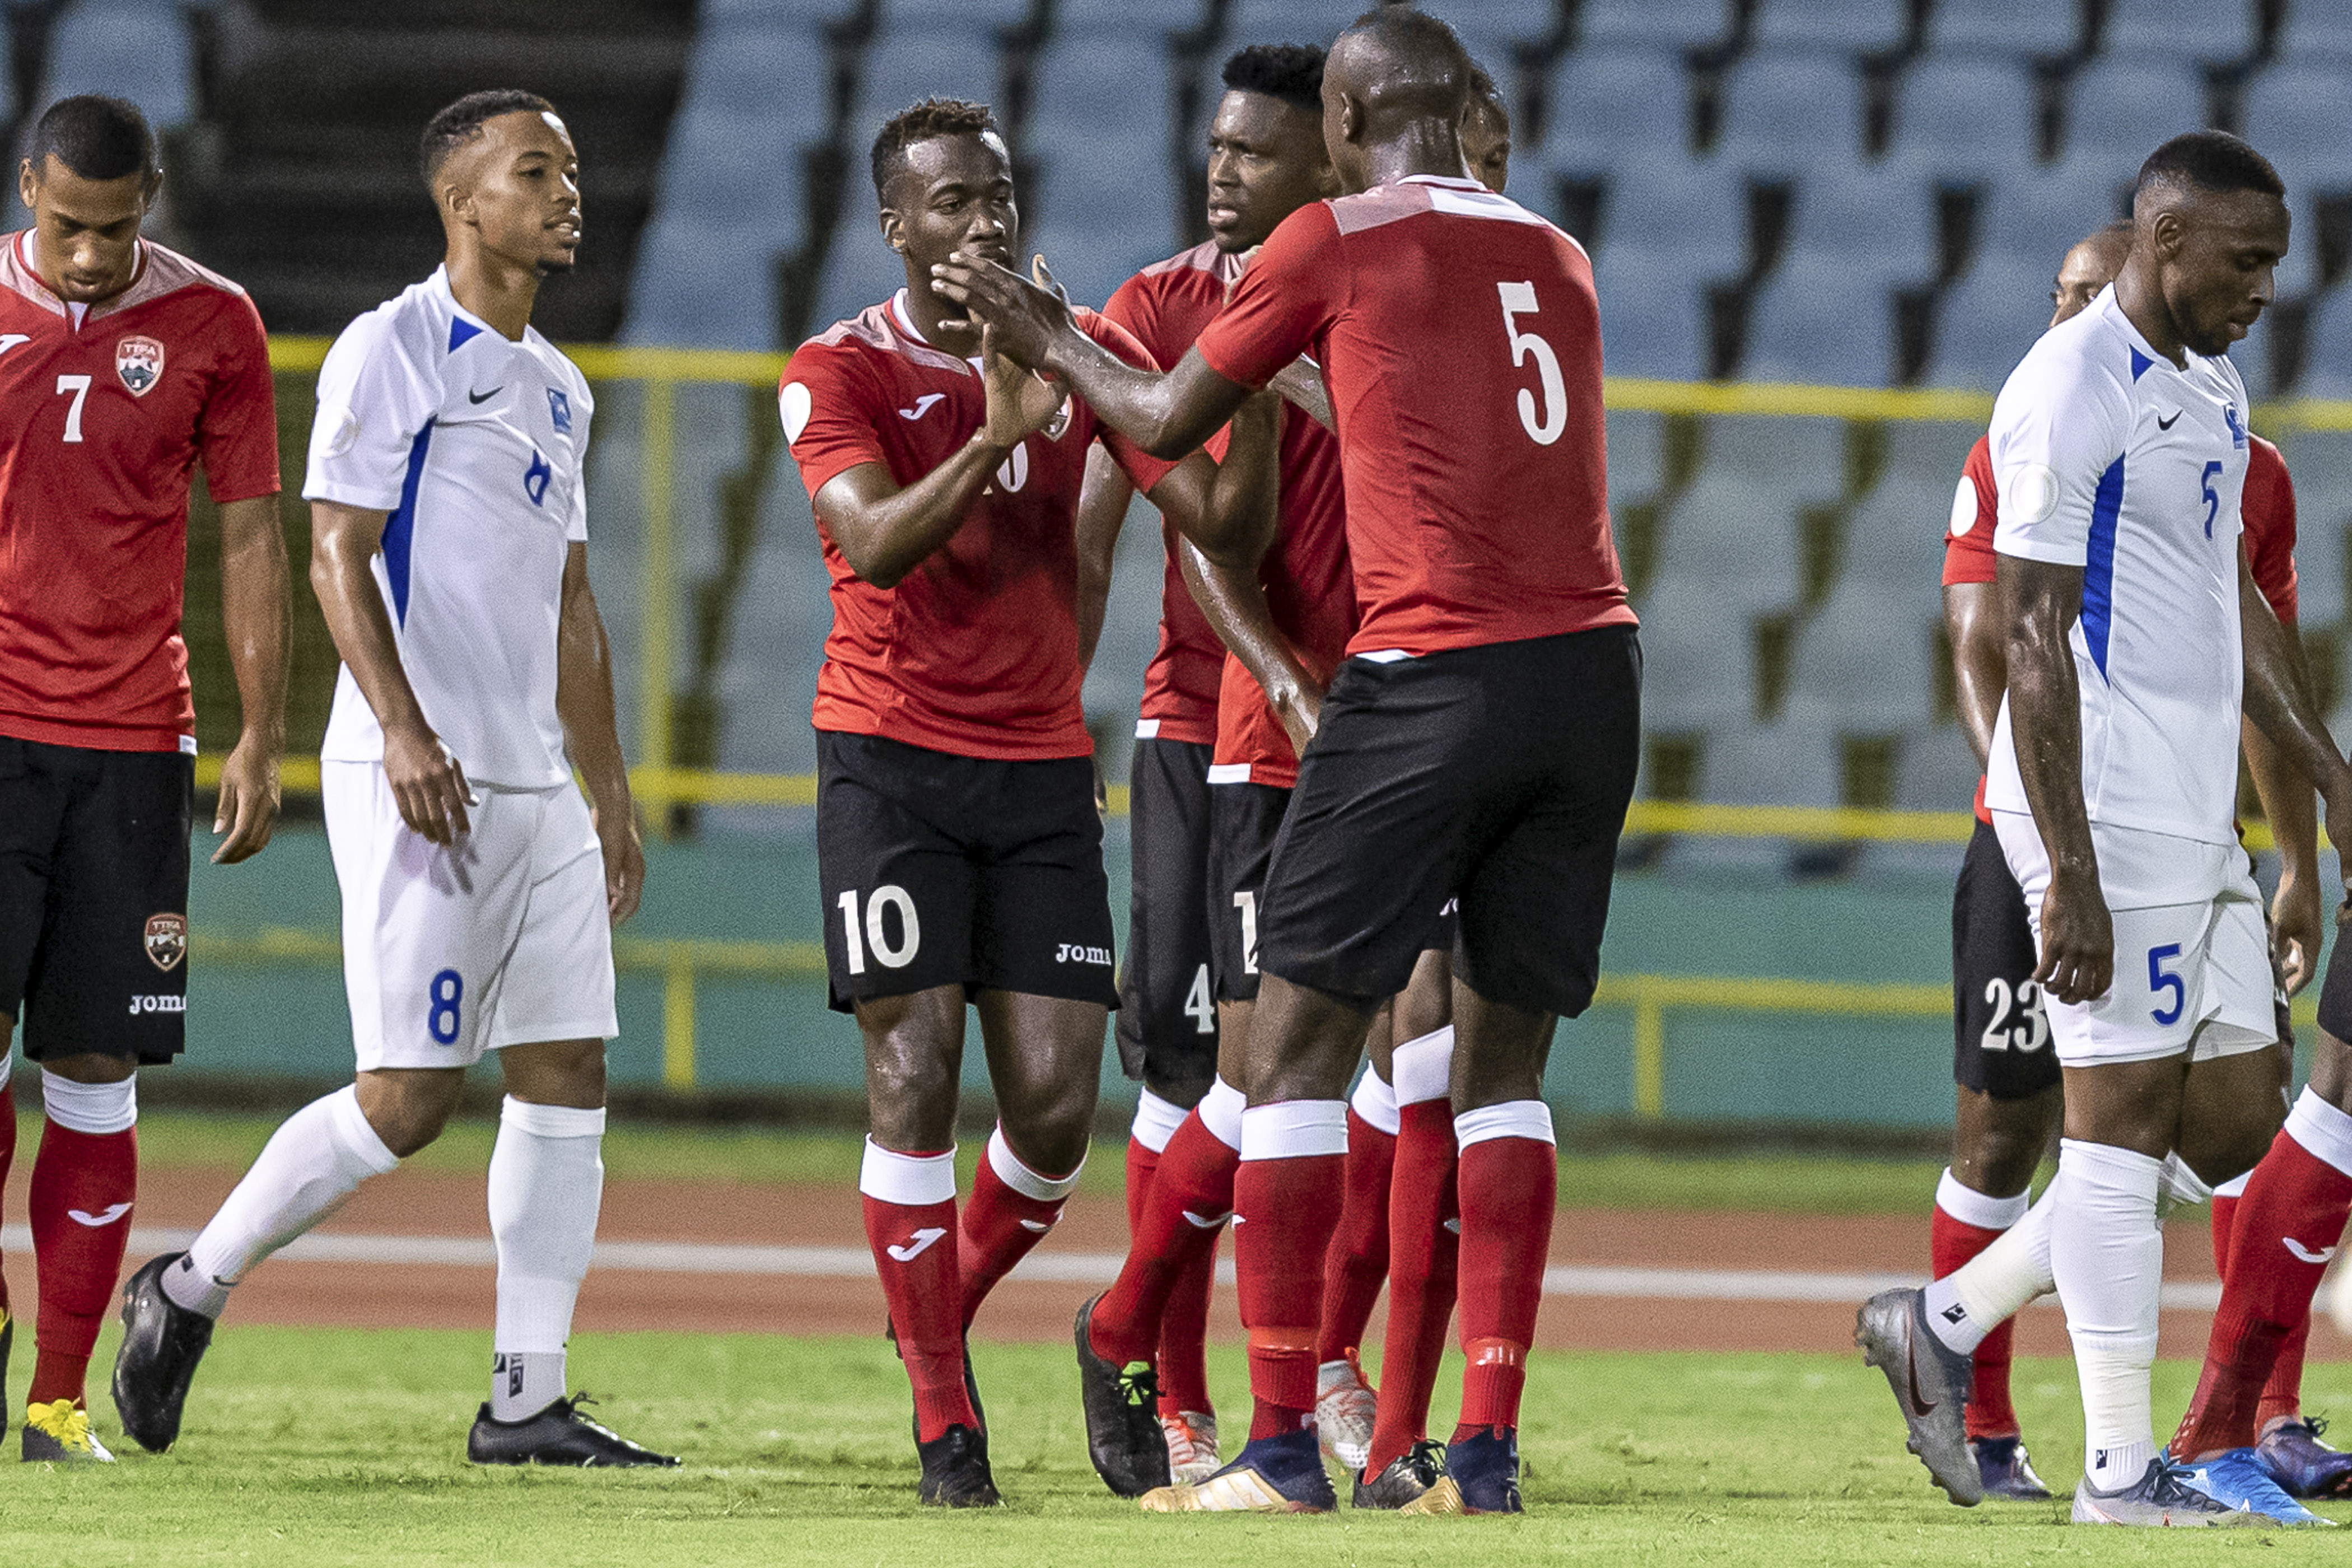 T&T play to 2-2 draw with Martinique in Nations League clash.